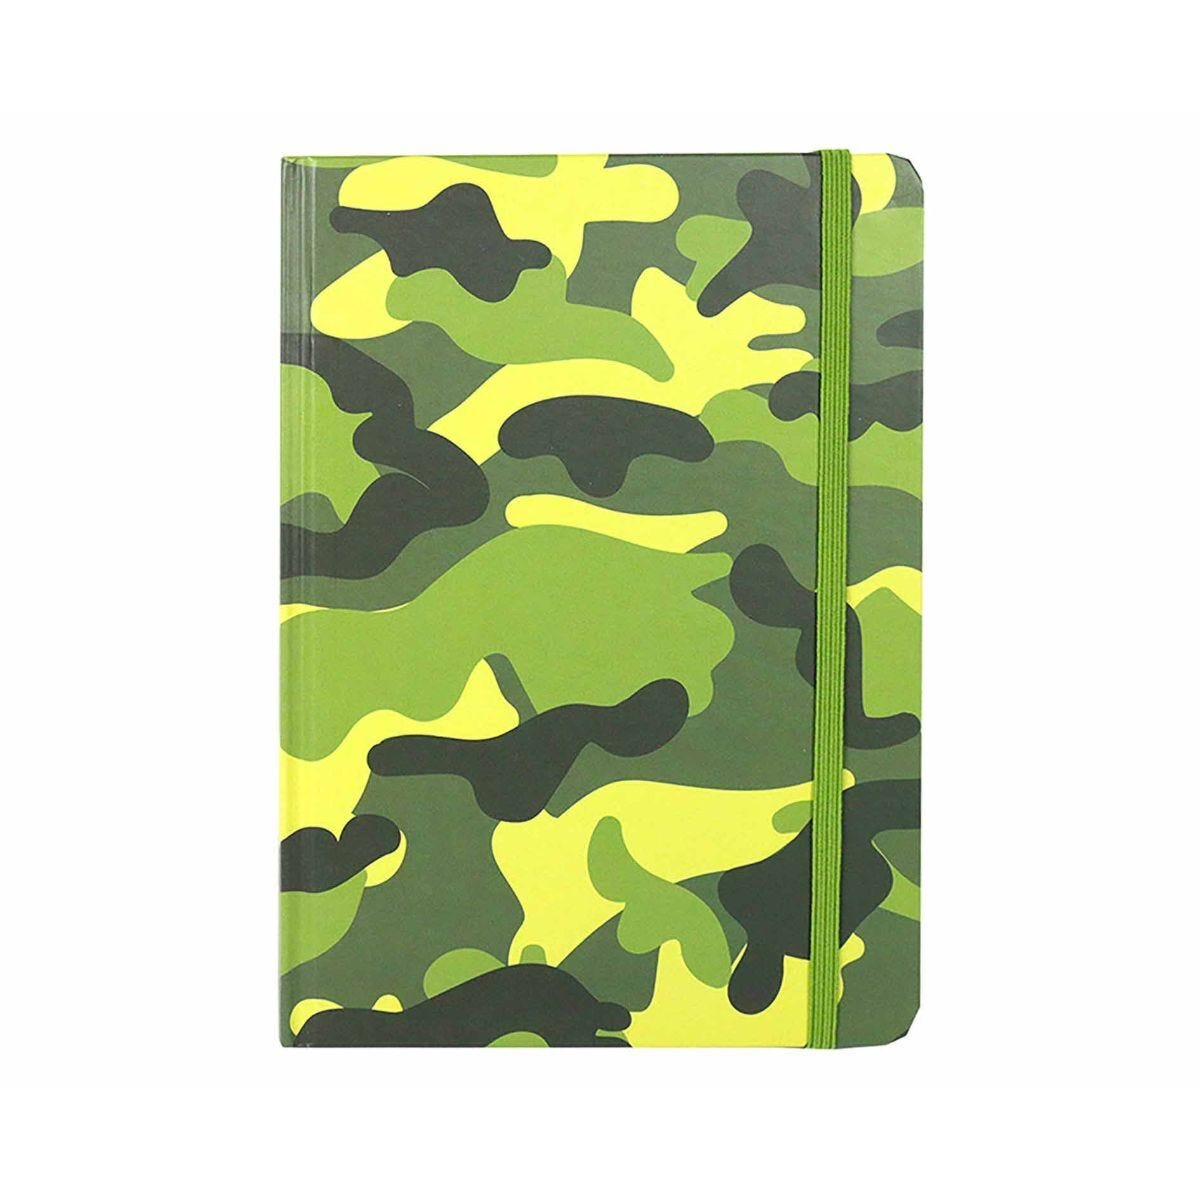 Camouflage Notebook Ruled A5